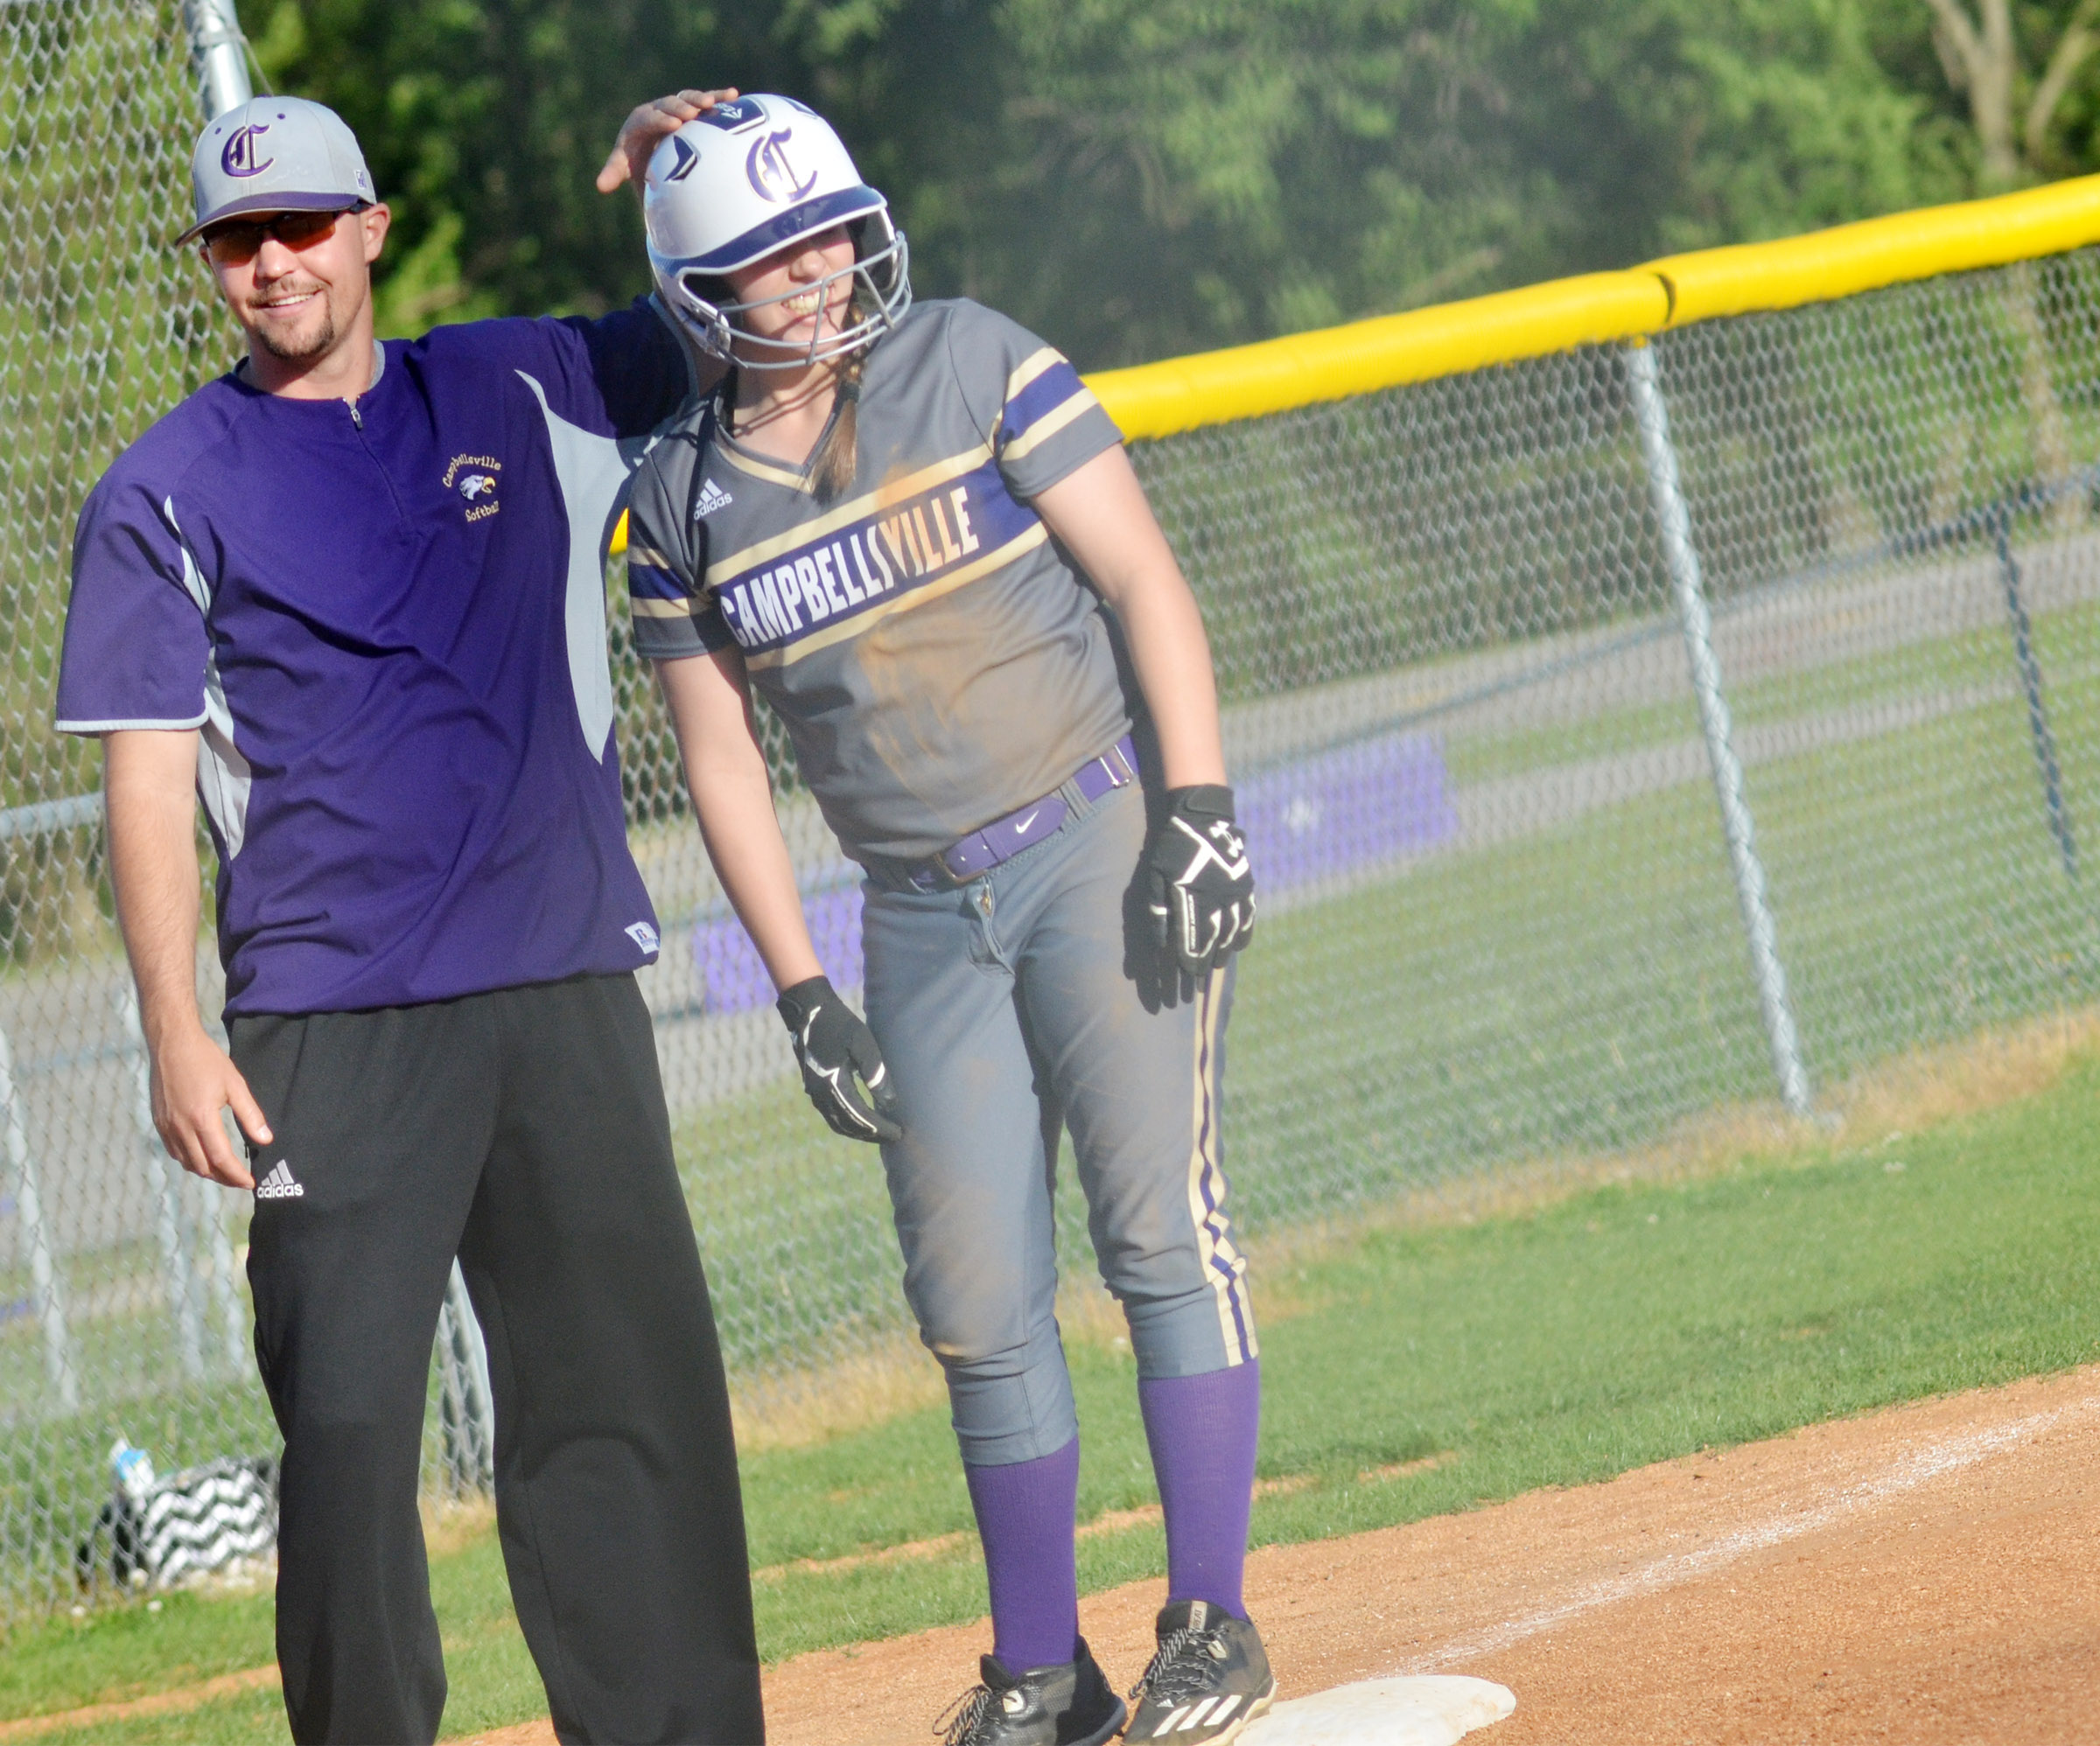 CHS head softball coach Weston Jones congratulates Campbellsville Middle School eighth-grader Abi Wiedewitsch after she makes it safely back to third base.